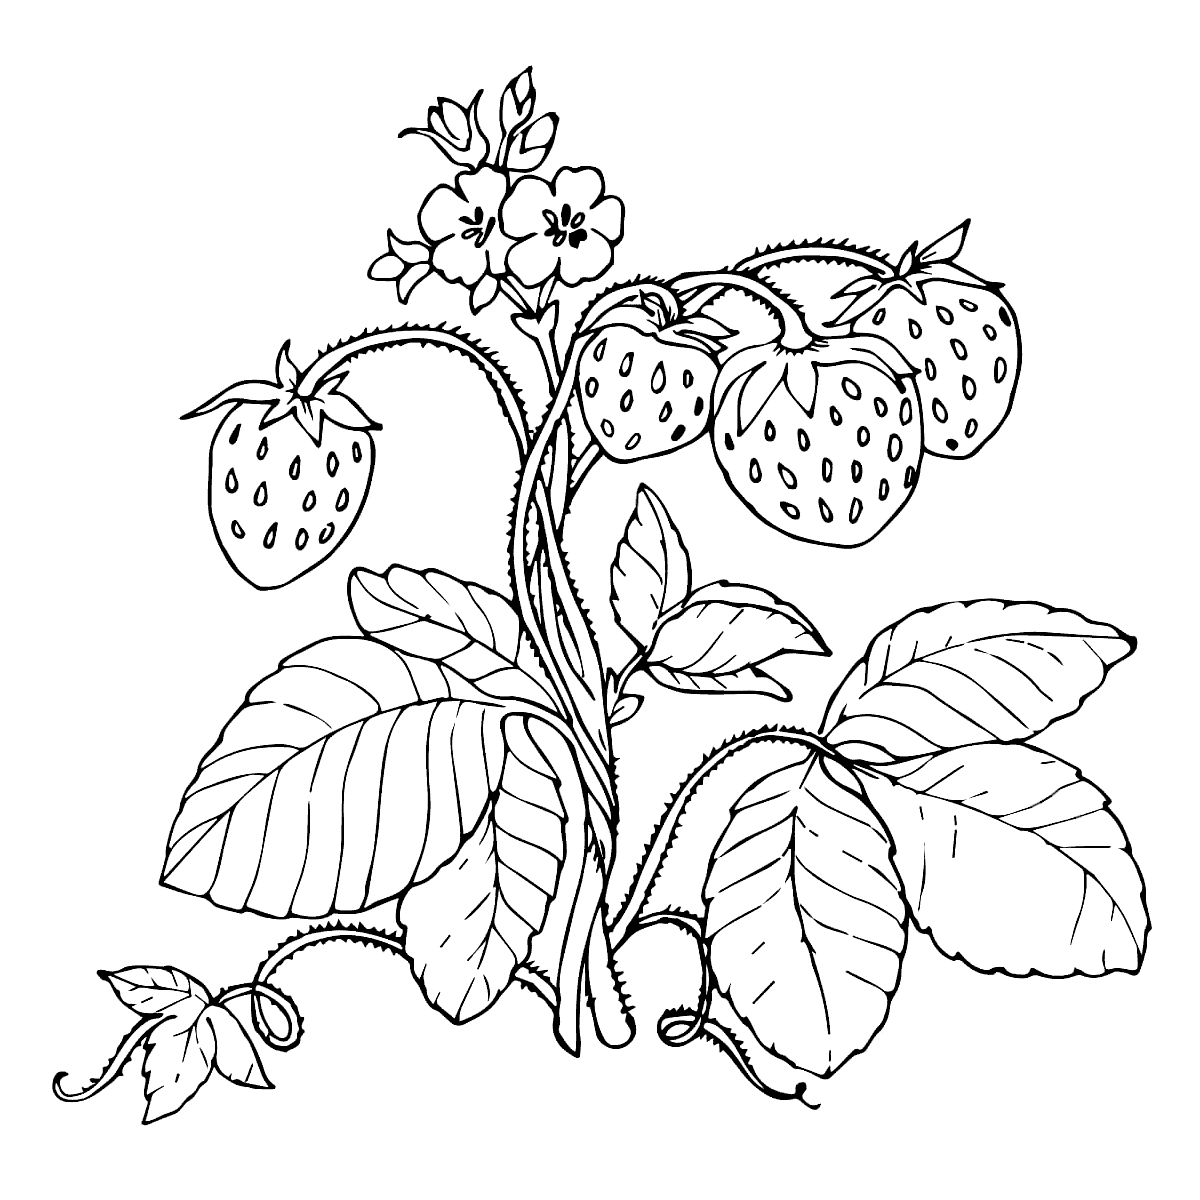 Strawberry plant drawing at getdrawings free for personal use strawberry plant drawing 21 strawberry plant drawing